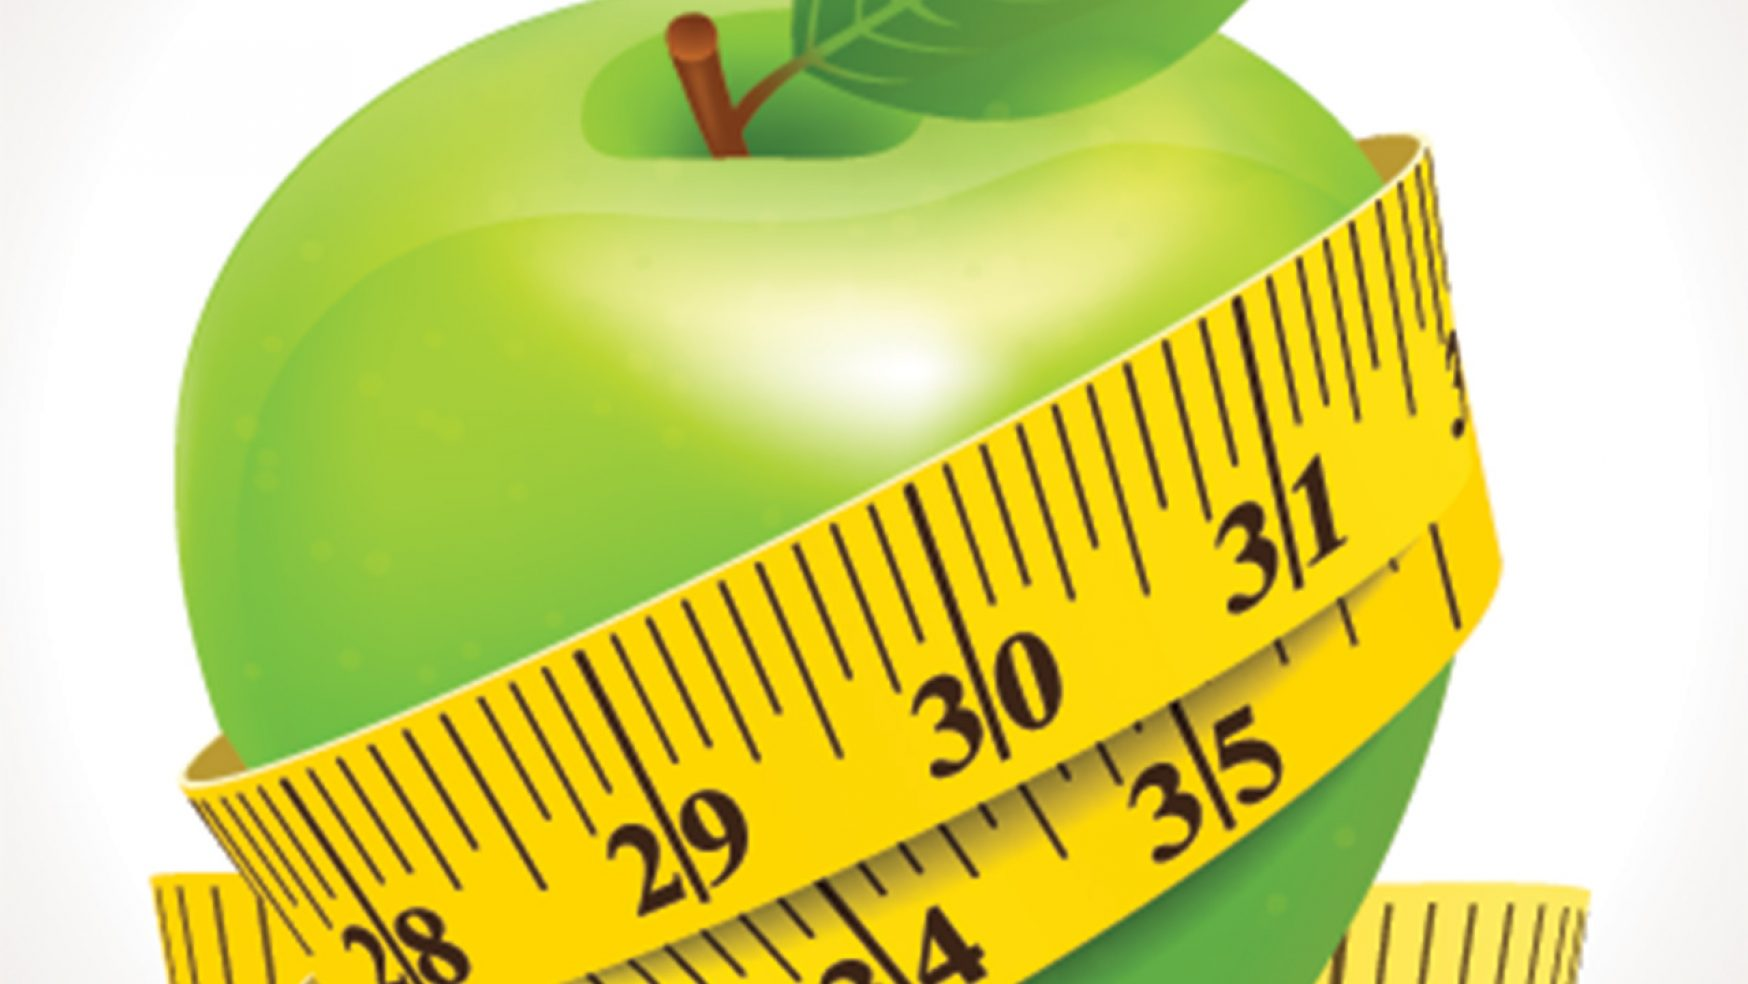 How can we know if we have a normal weight?